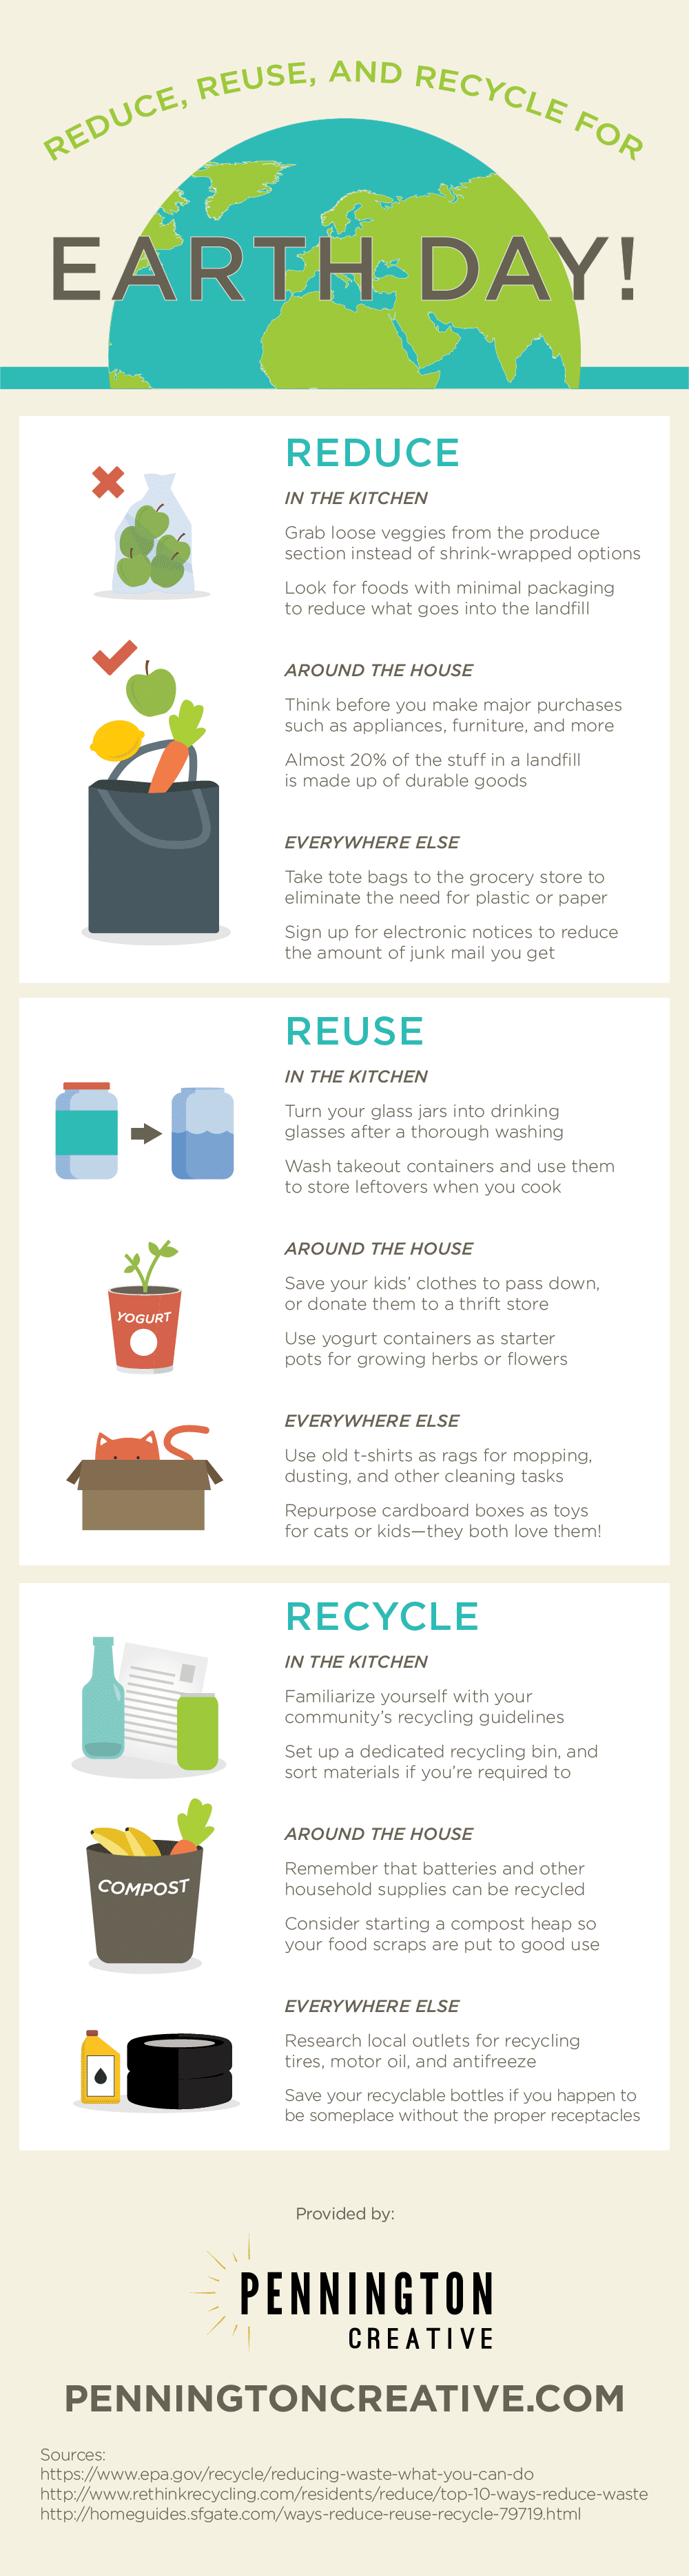 Reduce Reuse and Recycle for Earth Day Infographic